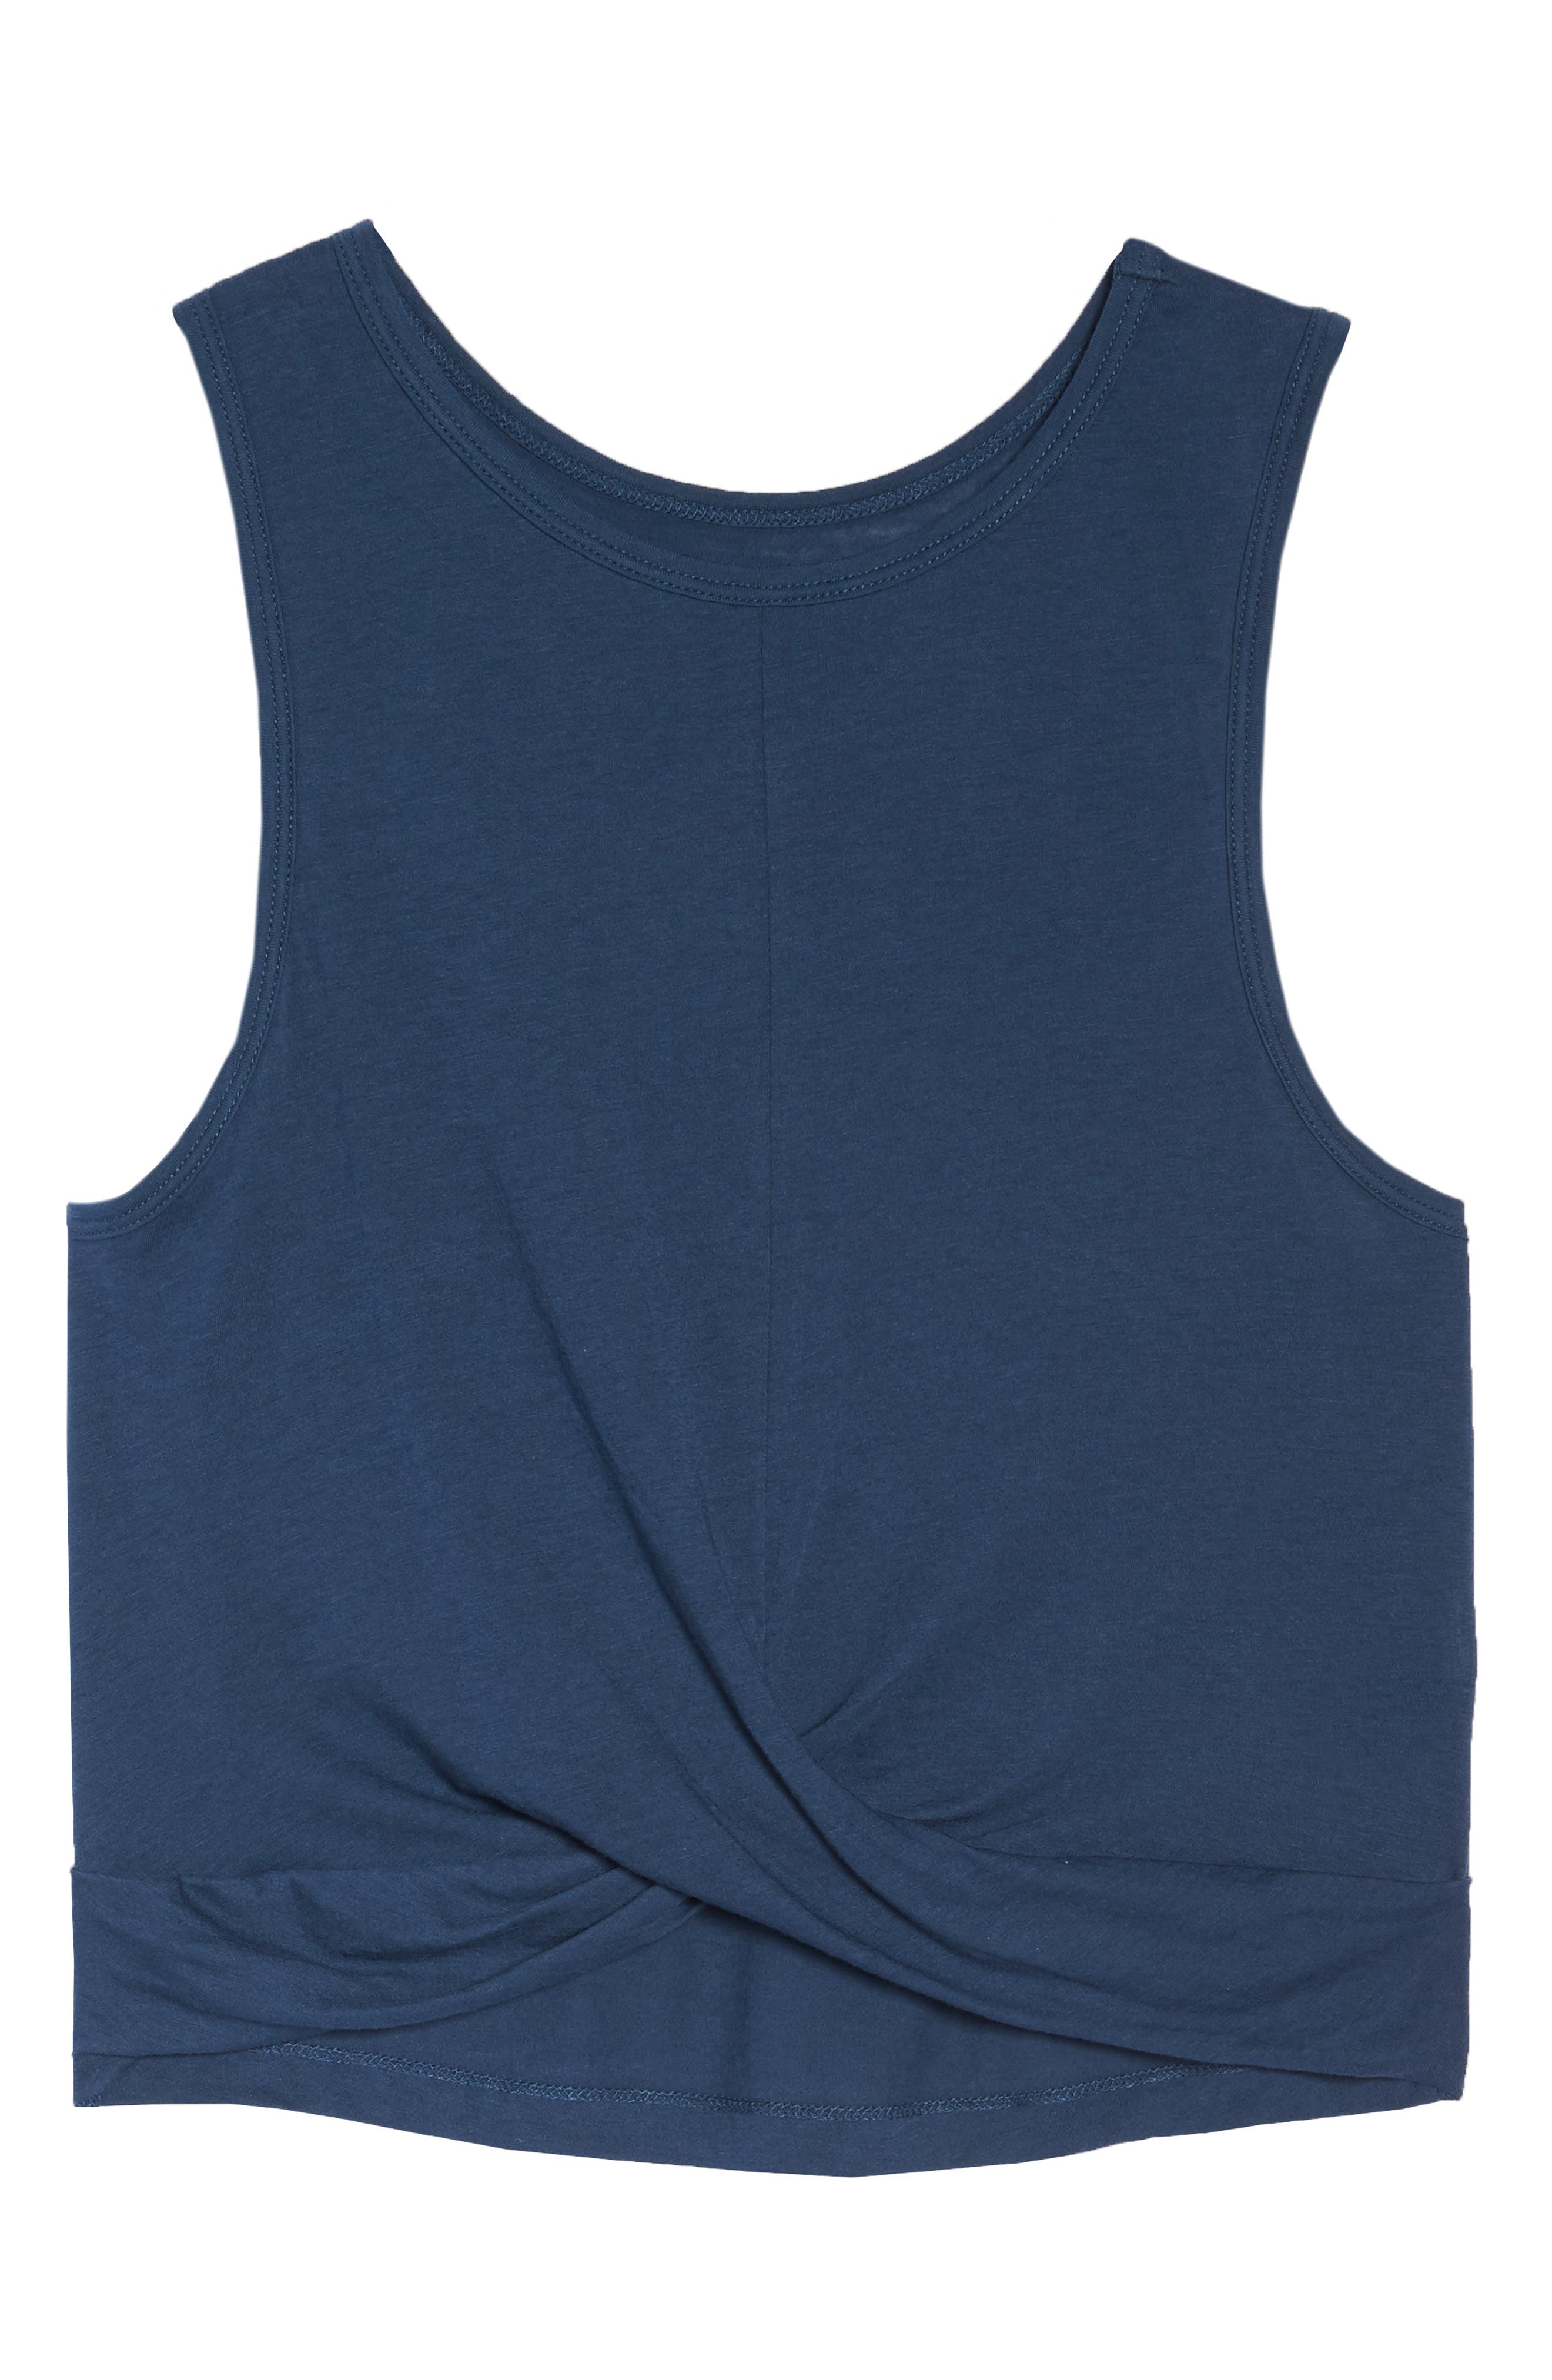 Crossroads Crop Tank,                             Alternate thumbnail 8, color,                             OUTLAW NAVY